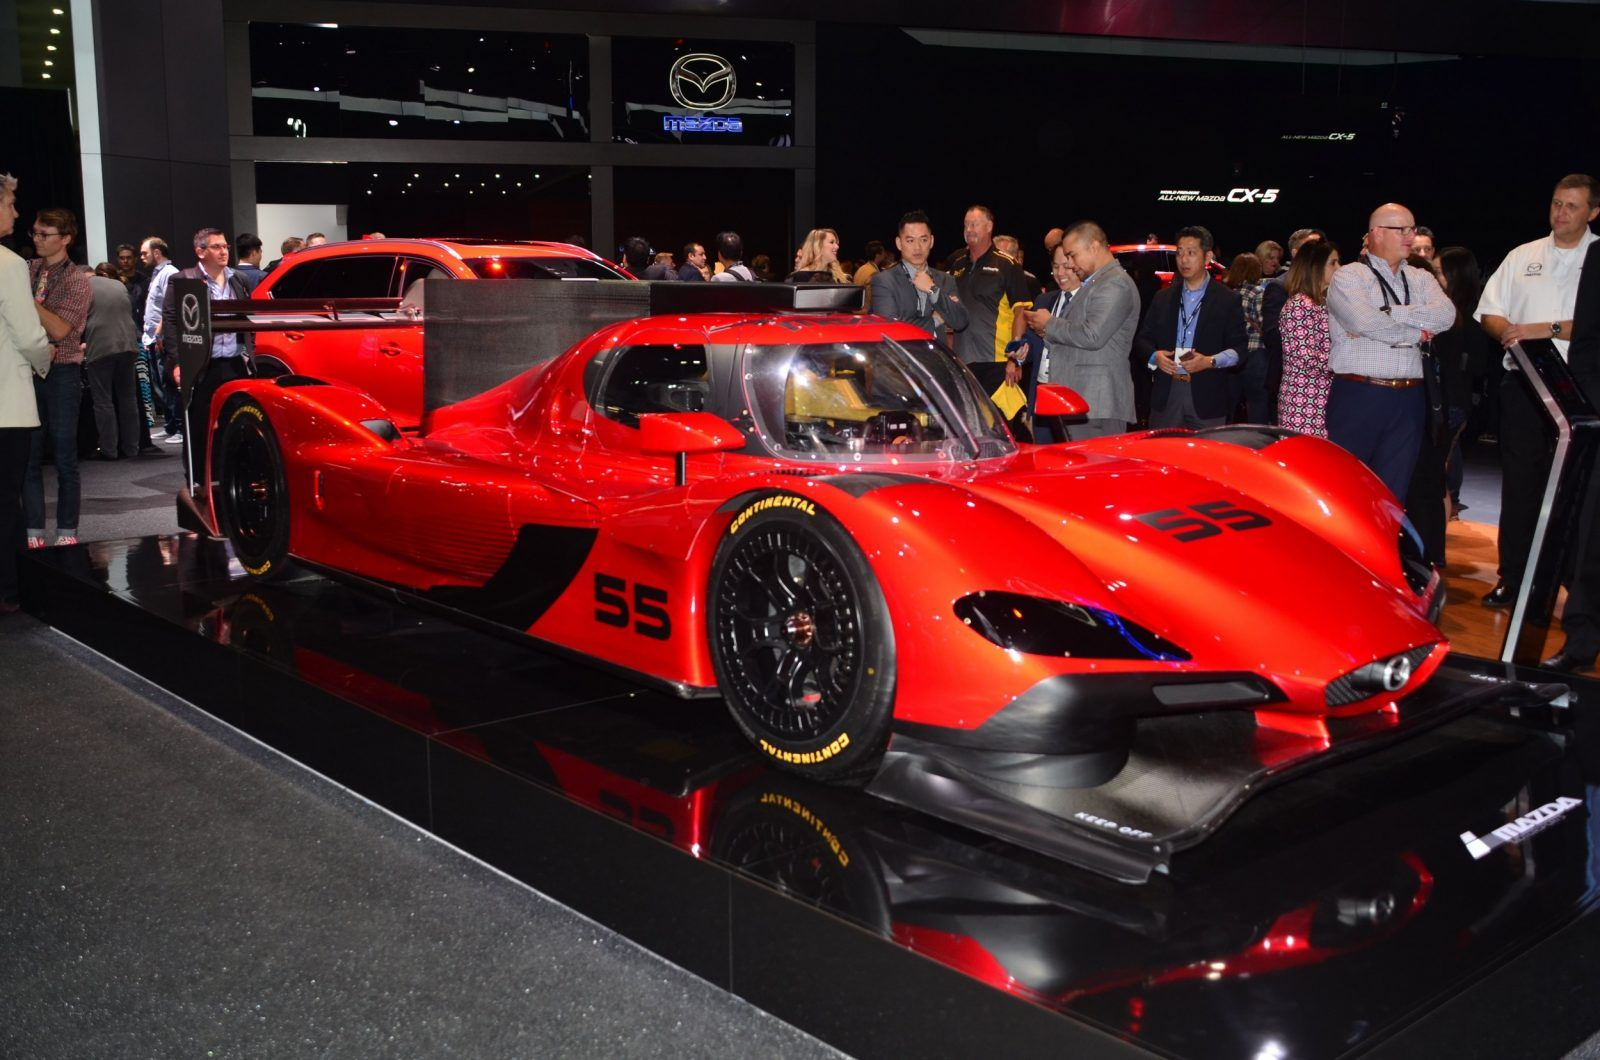 I Love Endurance Prototype Racecars They Take Truly Concept Level Ingenuity In Aero And Grip To The Streets Well To The Road C In 2020 Mazda Sports Car La Auto Show